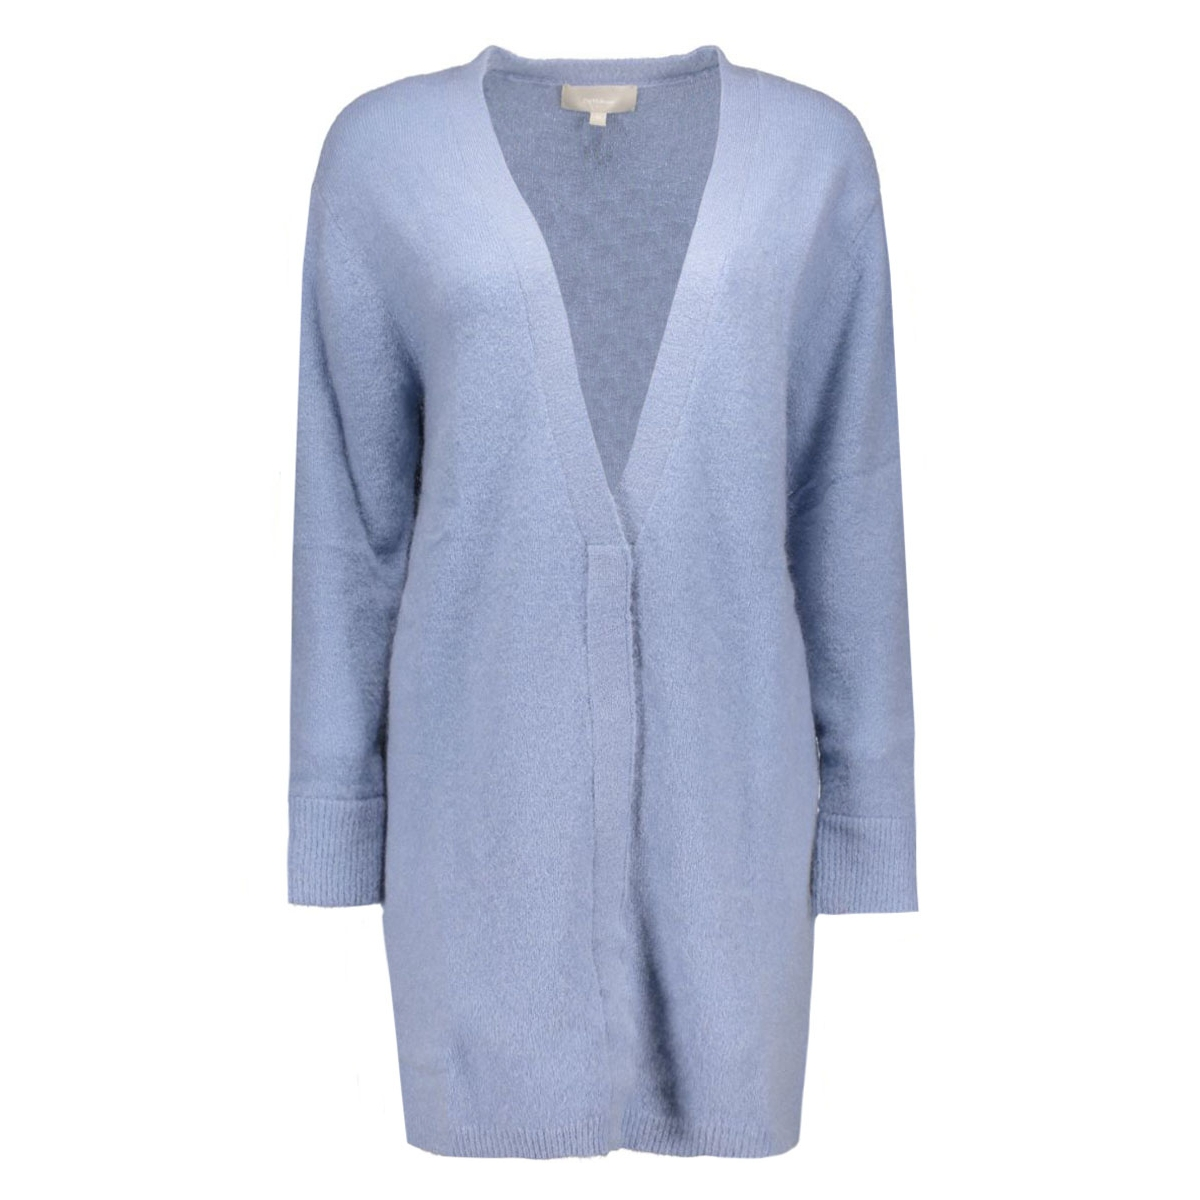 panula cardigan 30100635 inwear vest 10339 dusty blue